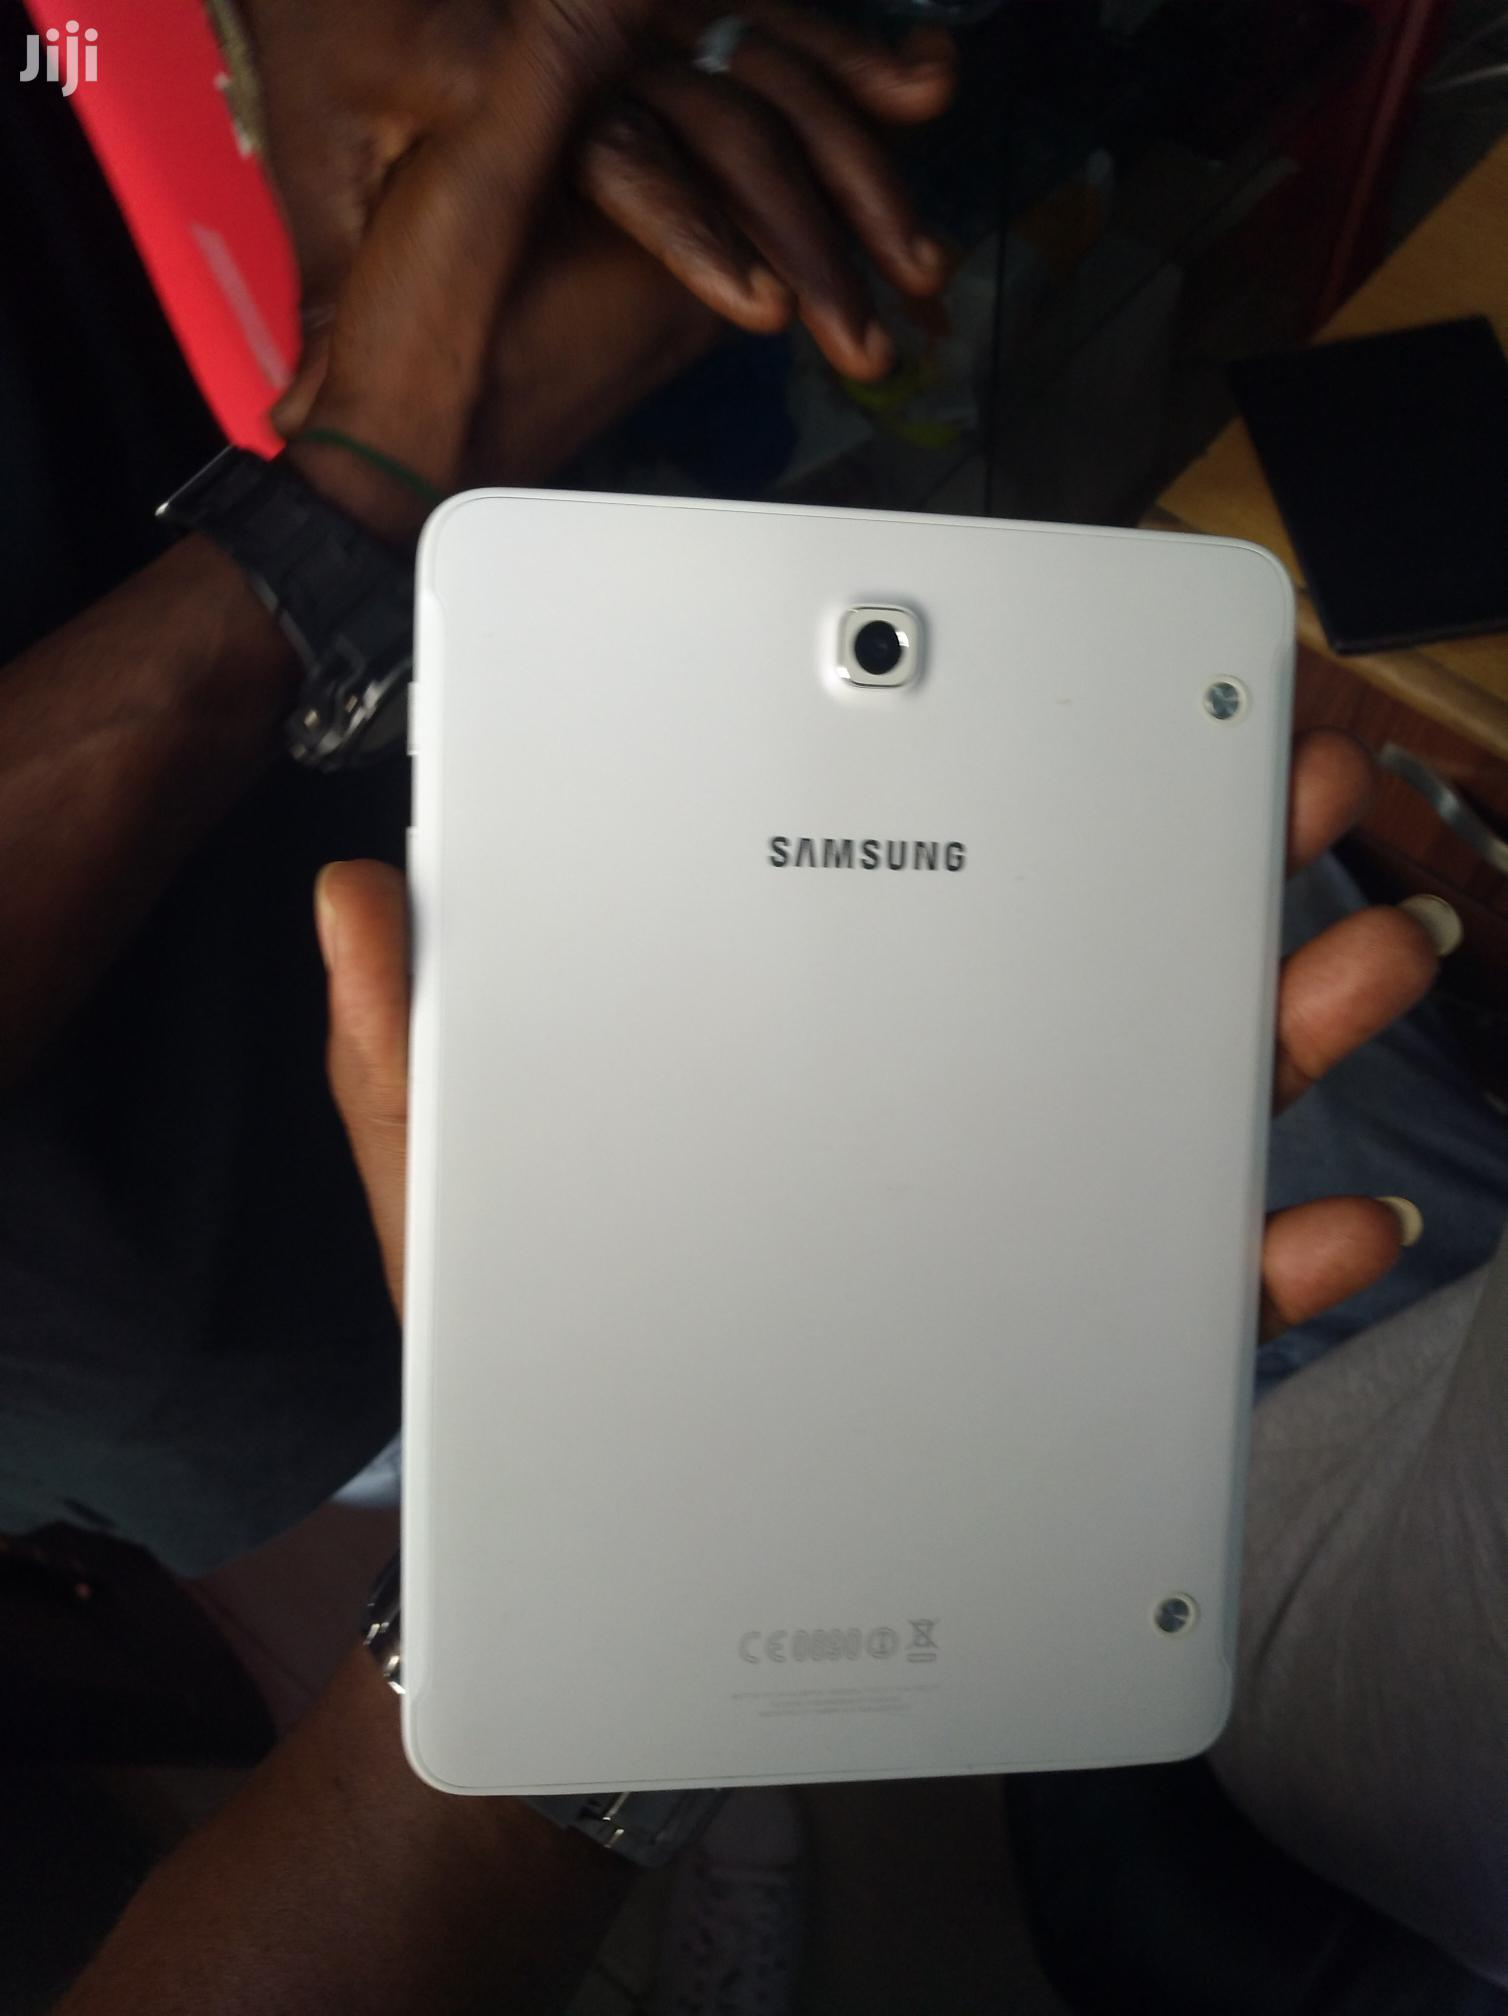 Samsung Galaxy Tab S2 8.0 32 GB White | Tablets for sale in Ikeja, Lagos State, Nigeria